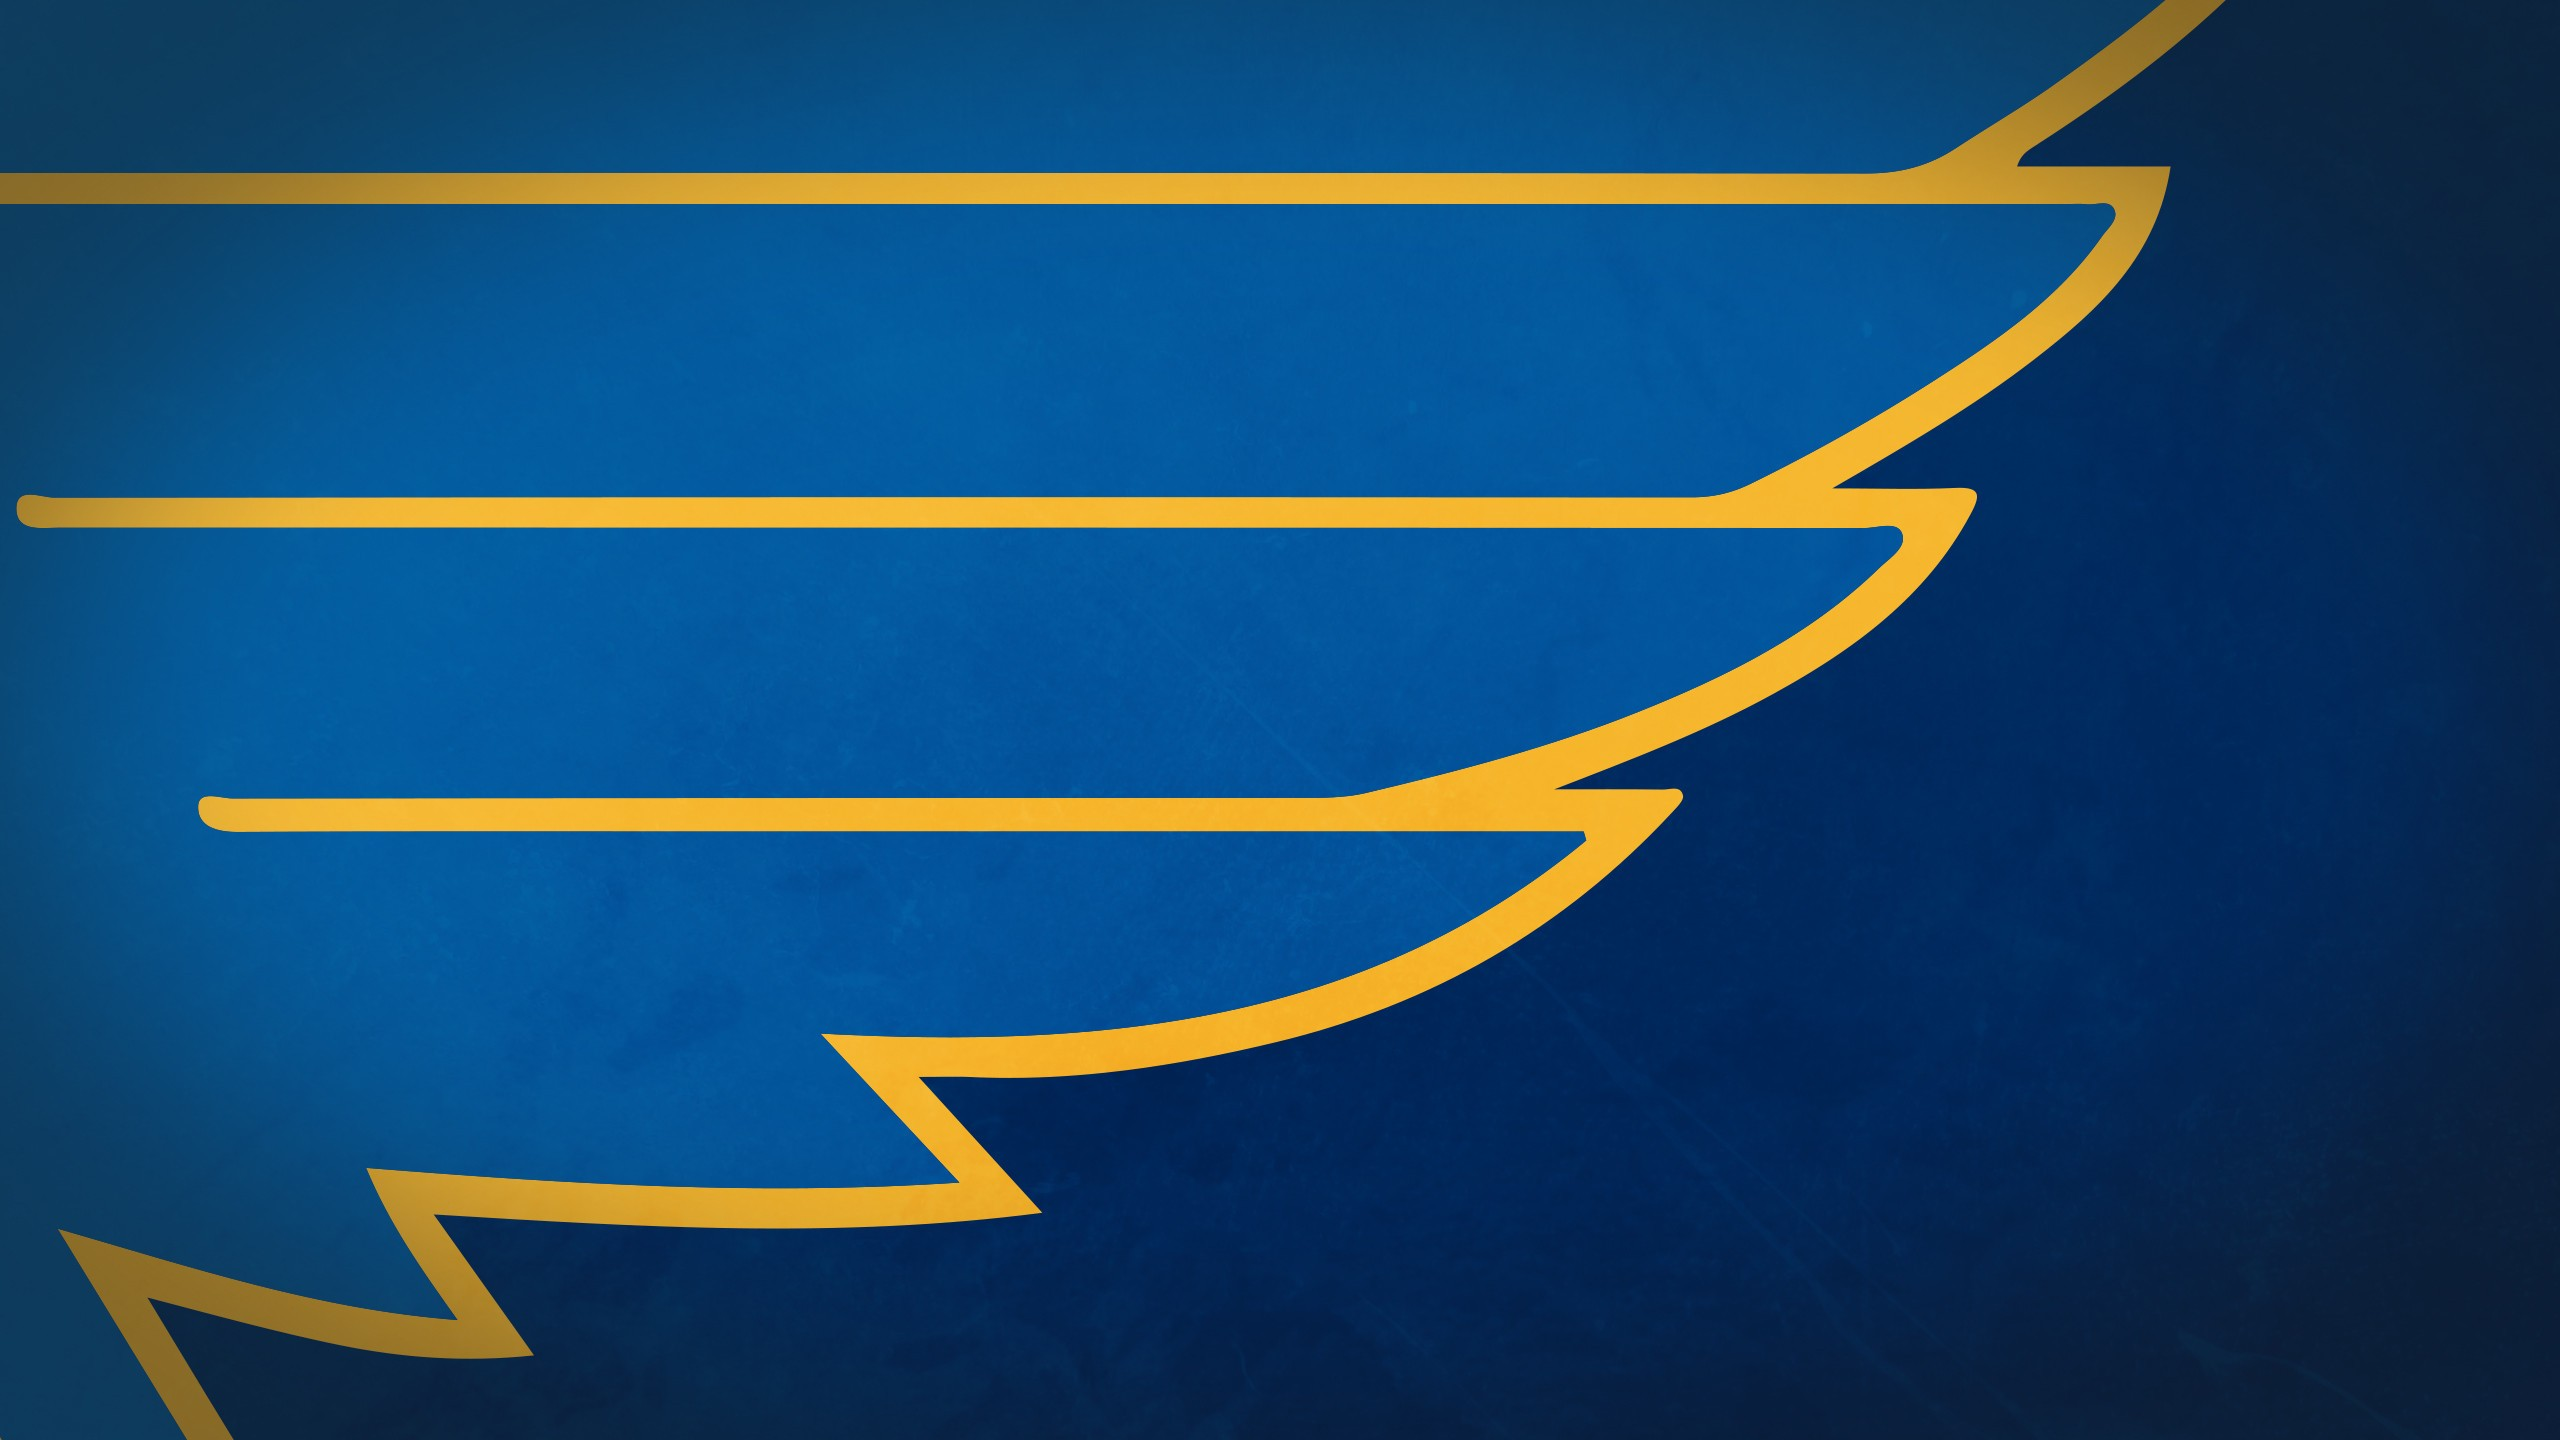 St Louis Blues Iphone Wallpaper St Louis Blues Full Hd Wallpaper And Background Image